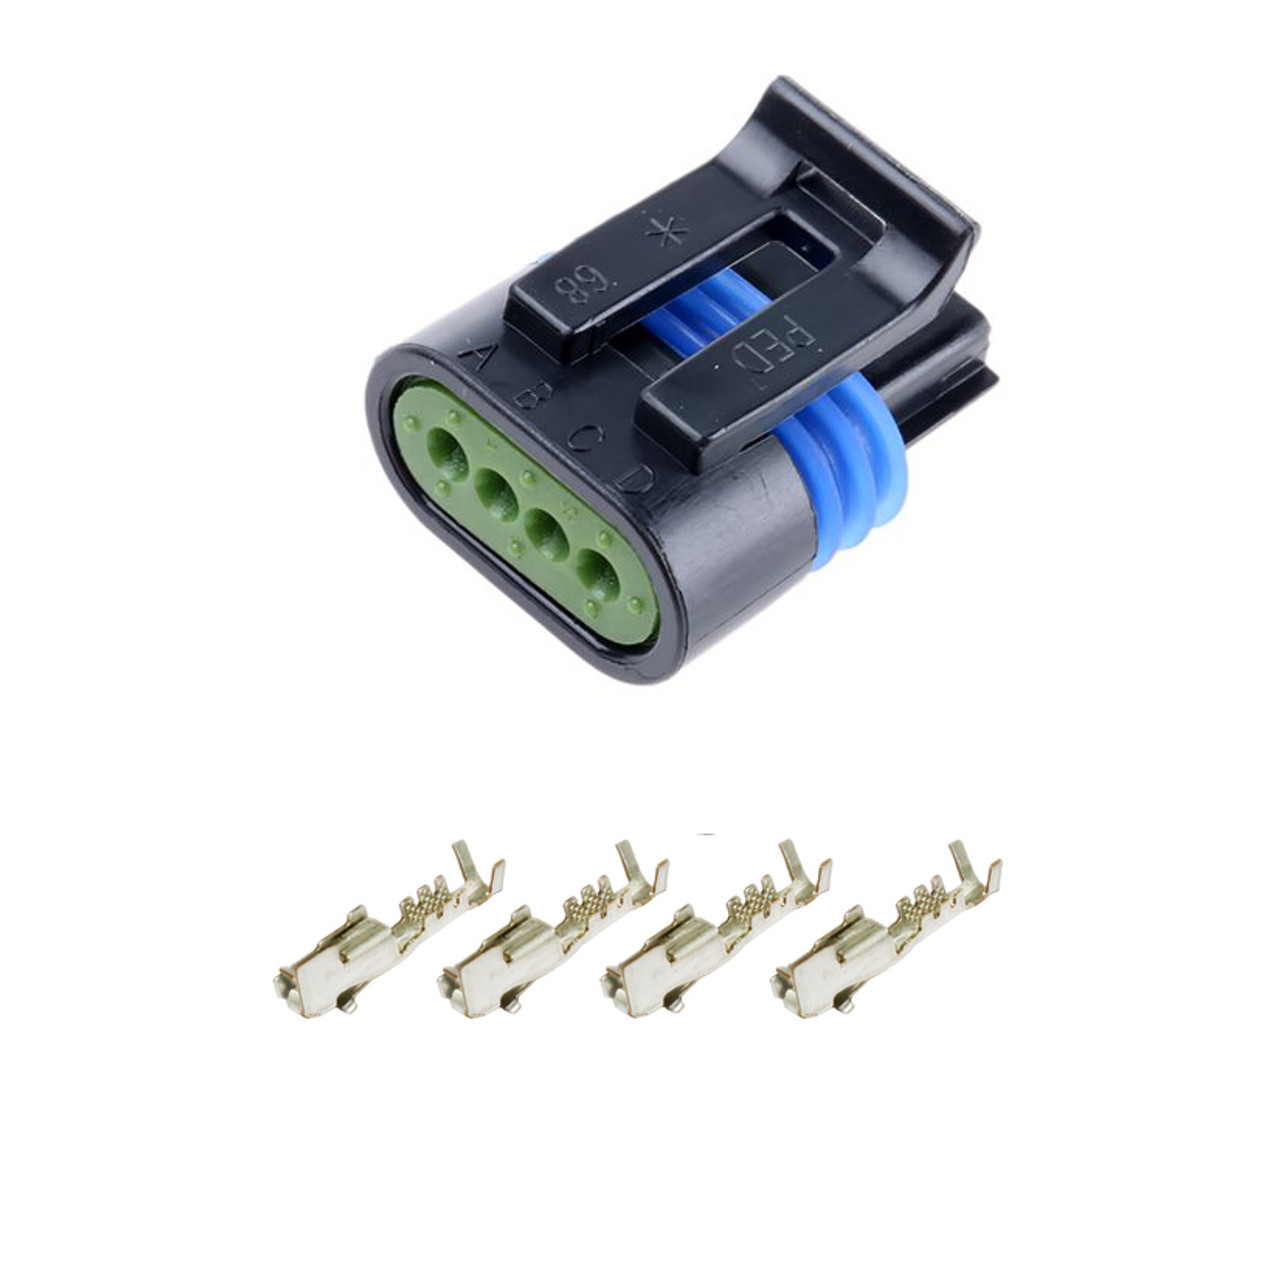 delphi metri pack 150 2 series sealed 4 pin female connector kit obd innovations [ 1280 x 1280 Pixel ]